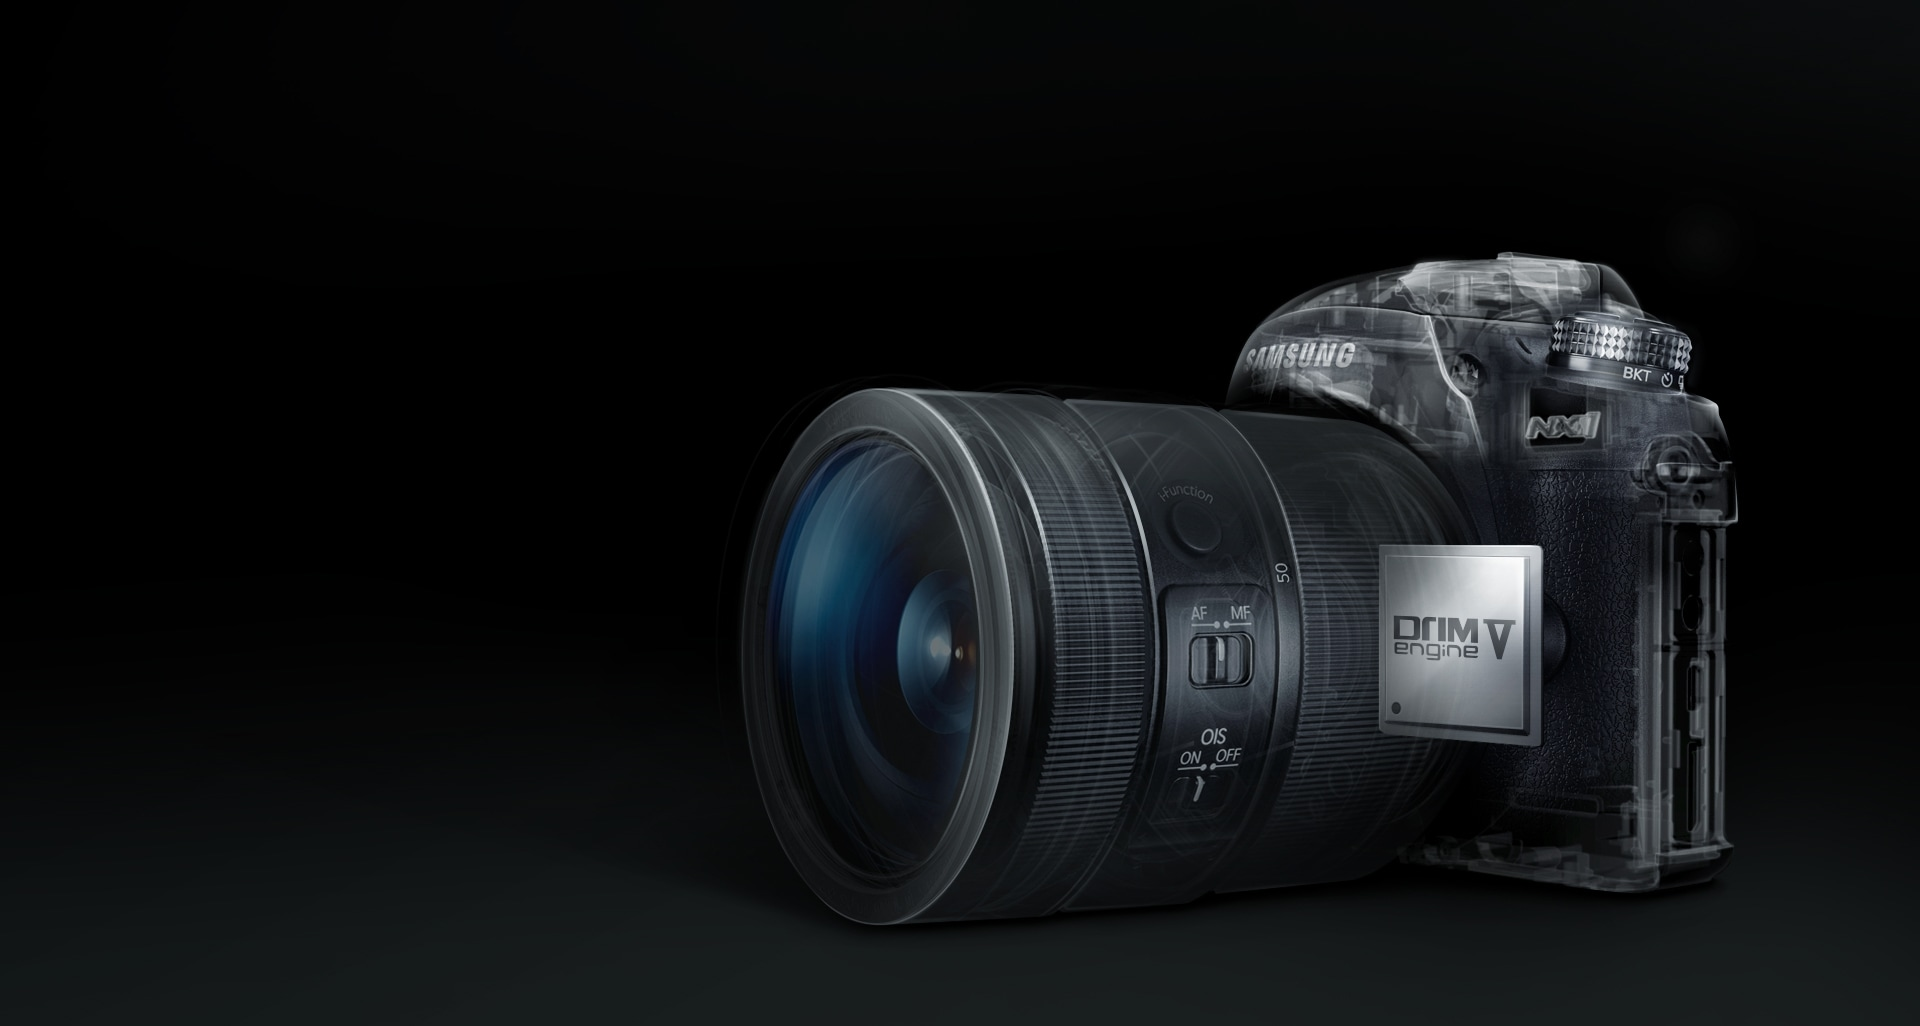 The inner part of the NX1 is shown installed with Samsung's latest image processing technology, the DRIMe V.